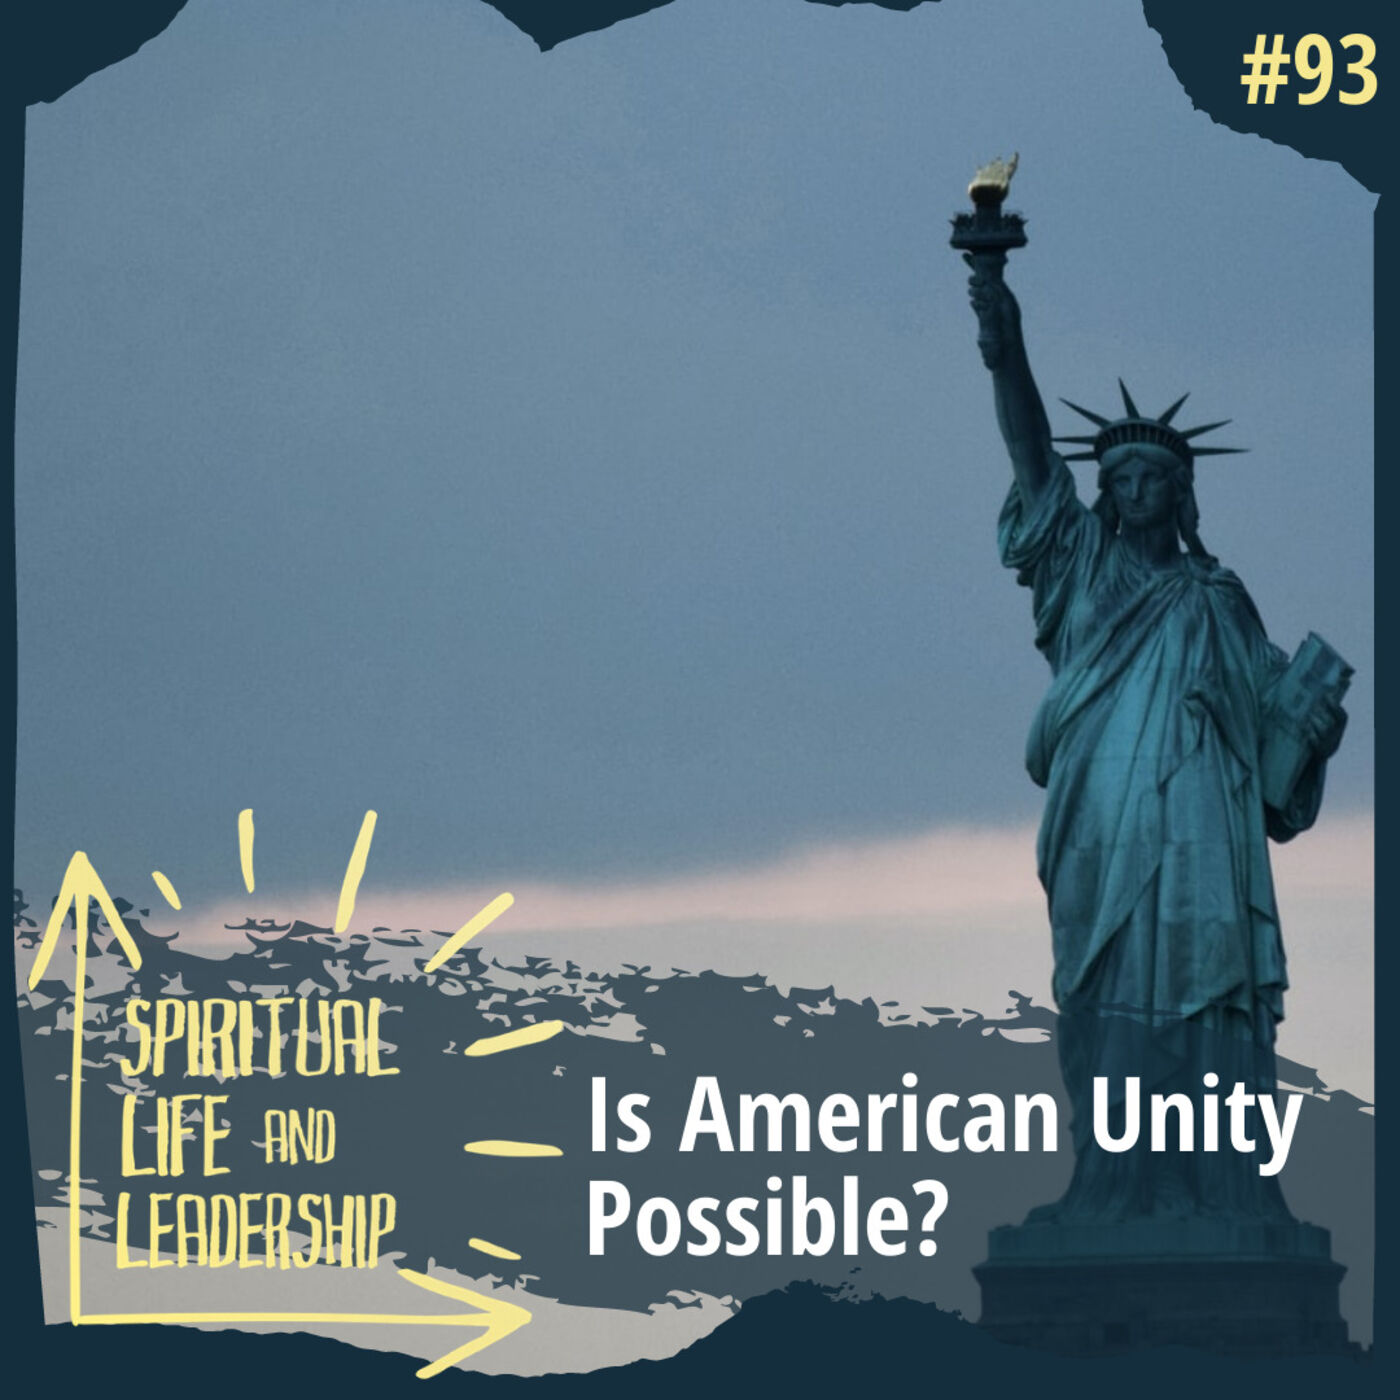 93. Is American Unity Possible?